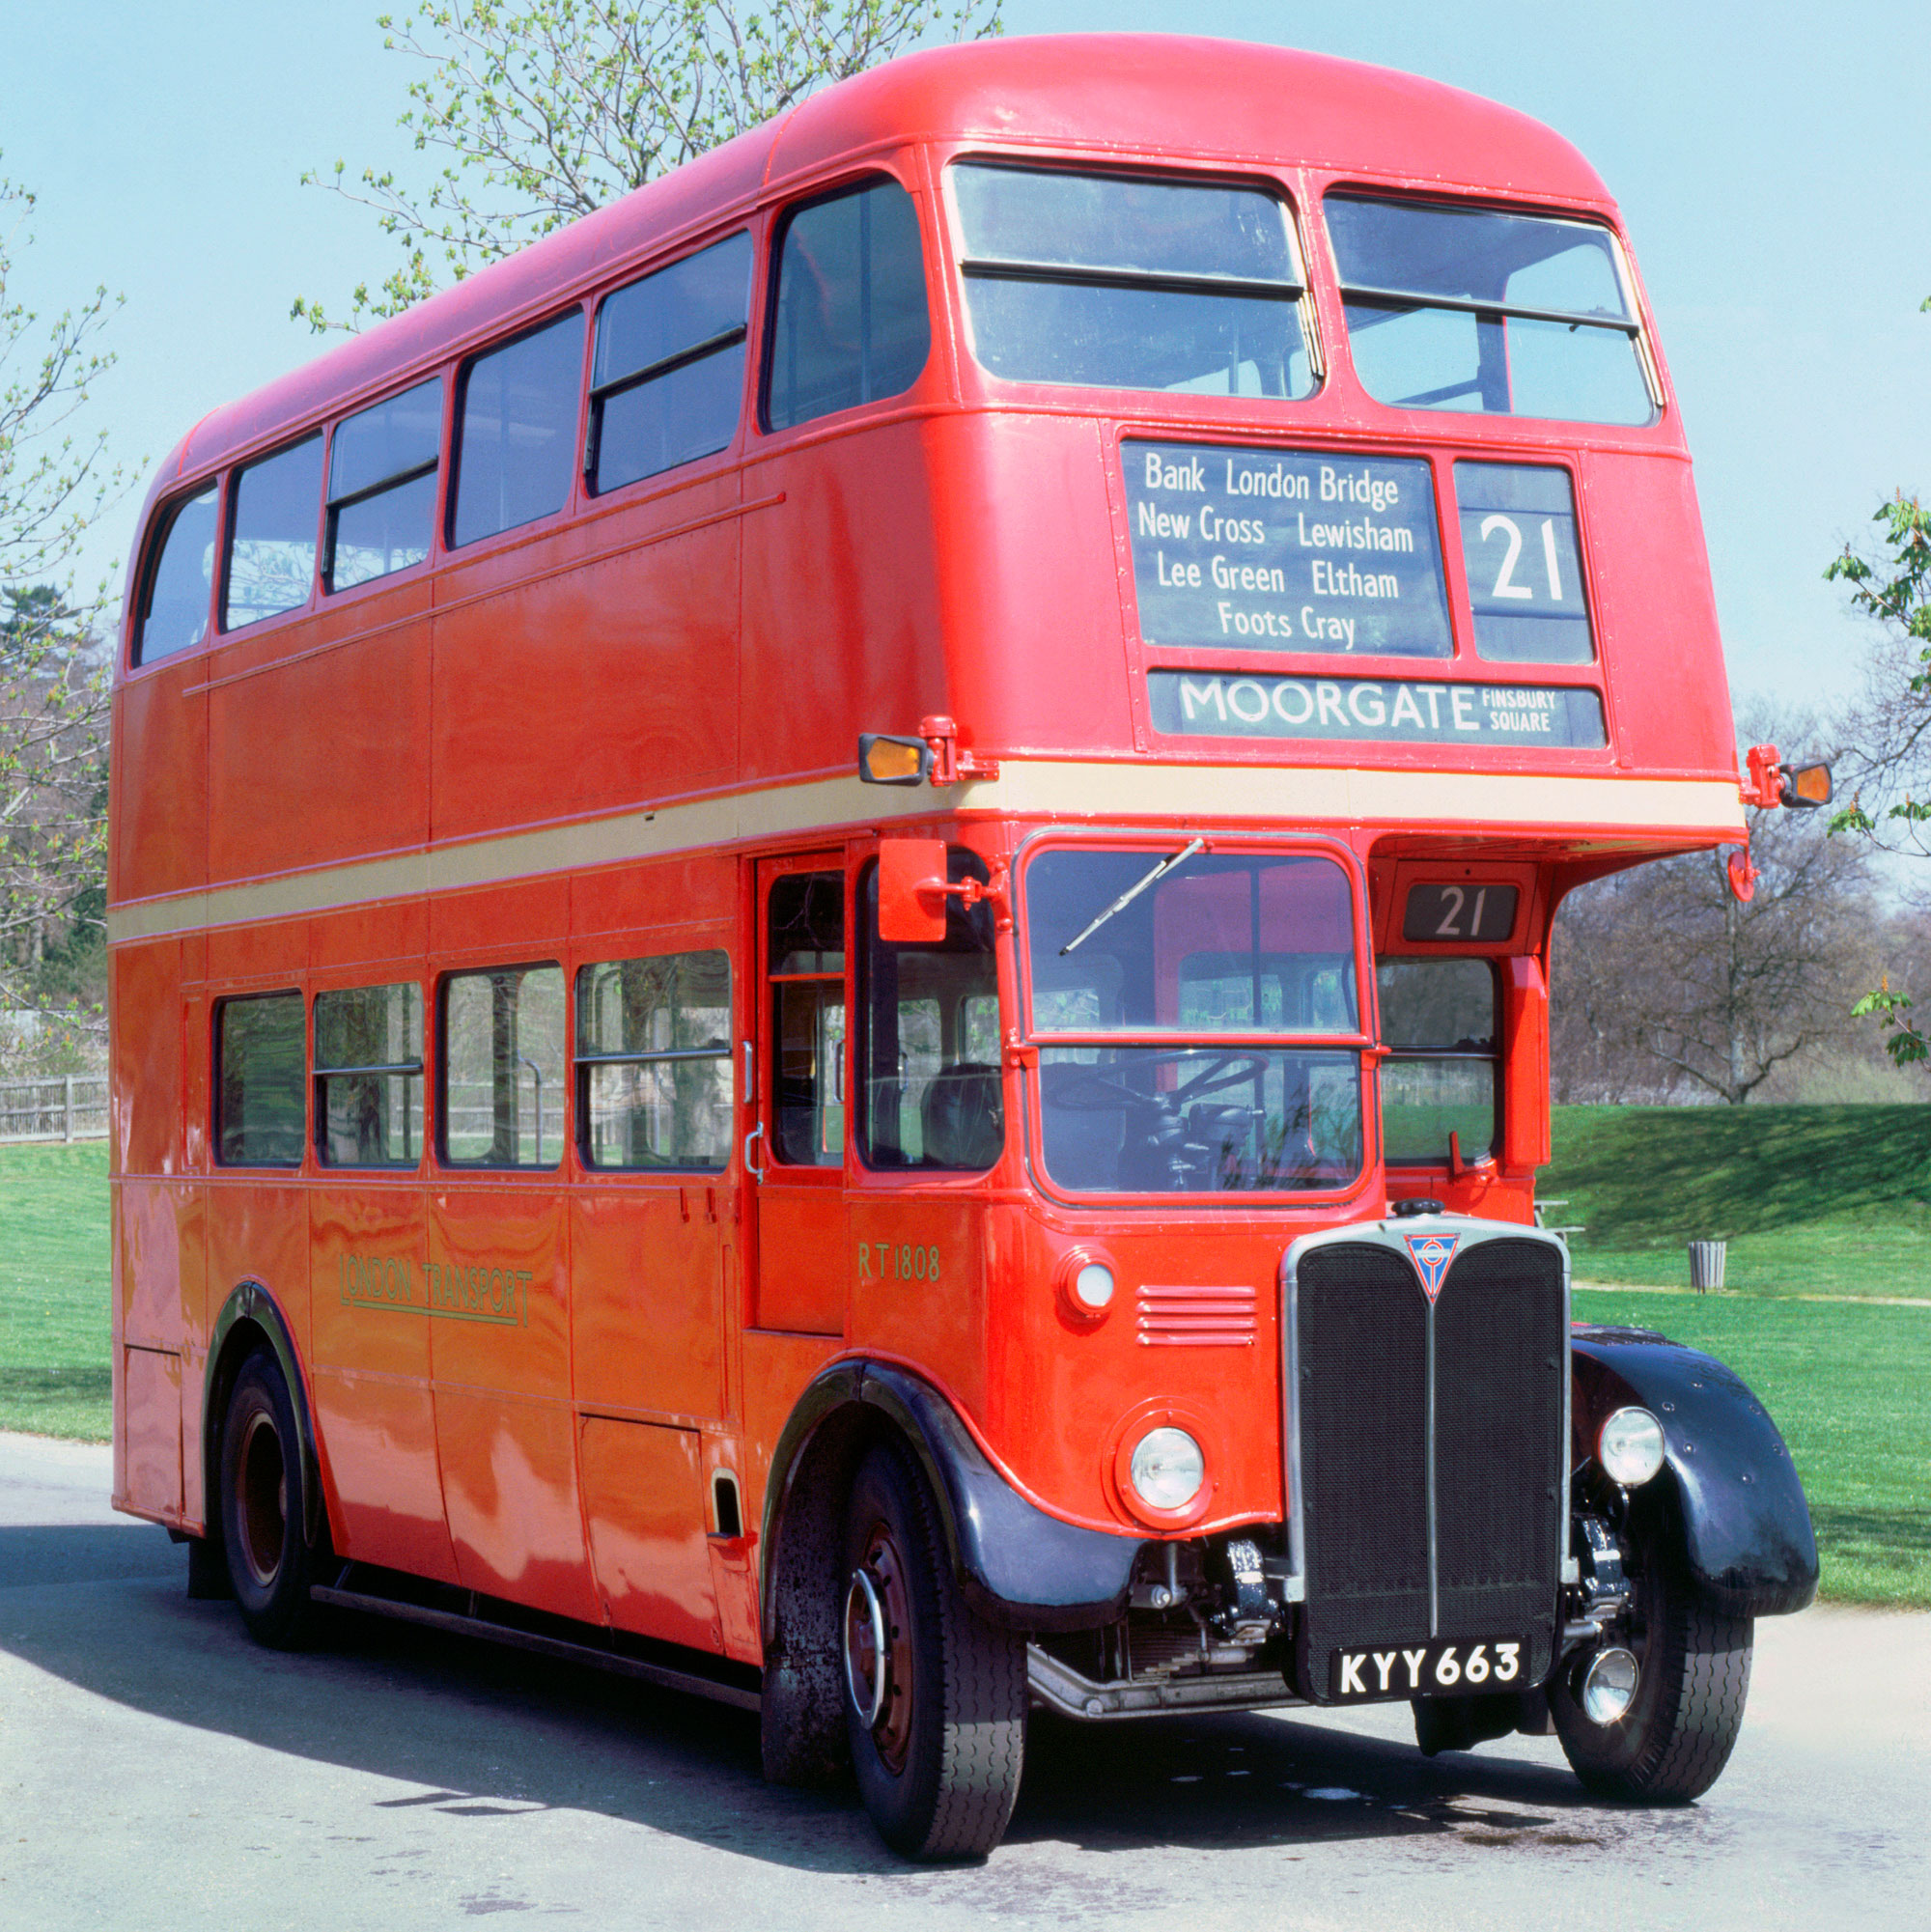 A 1950 AEC Regent III RT double decker bus